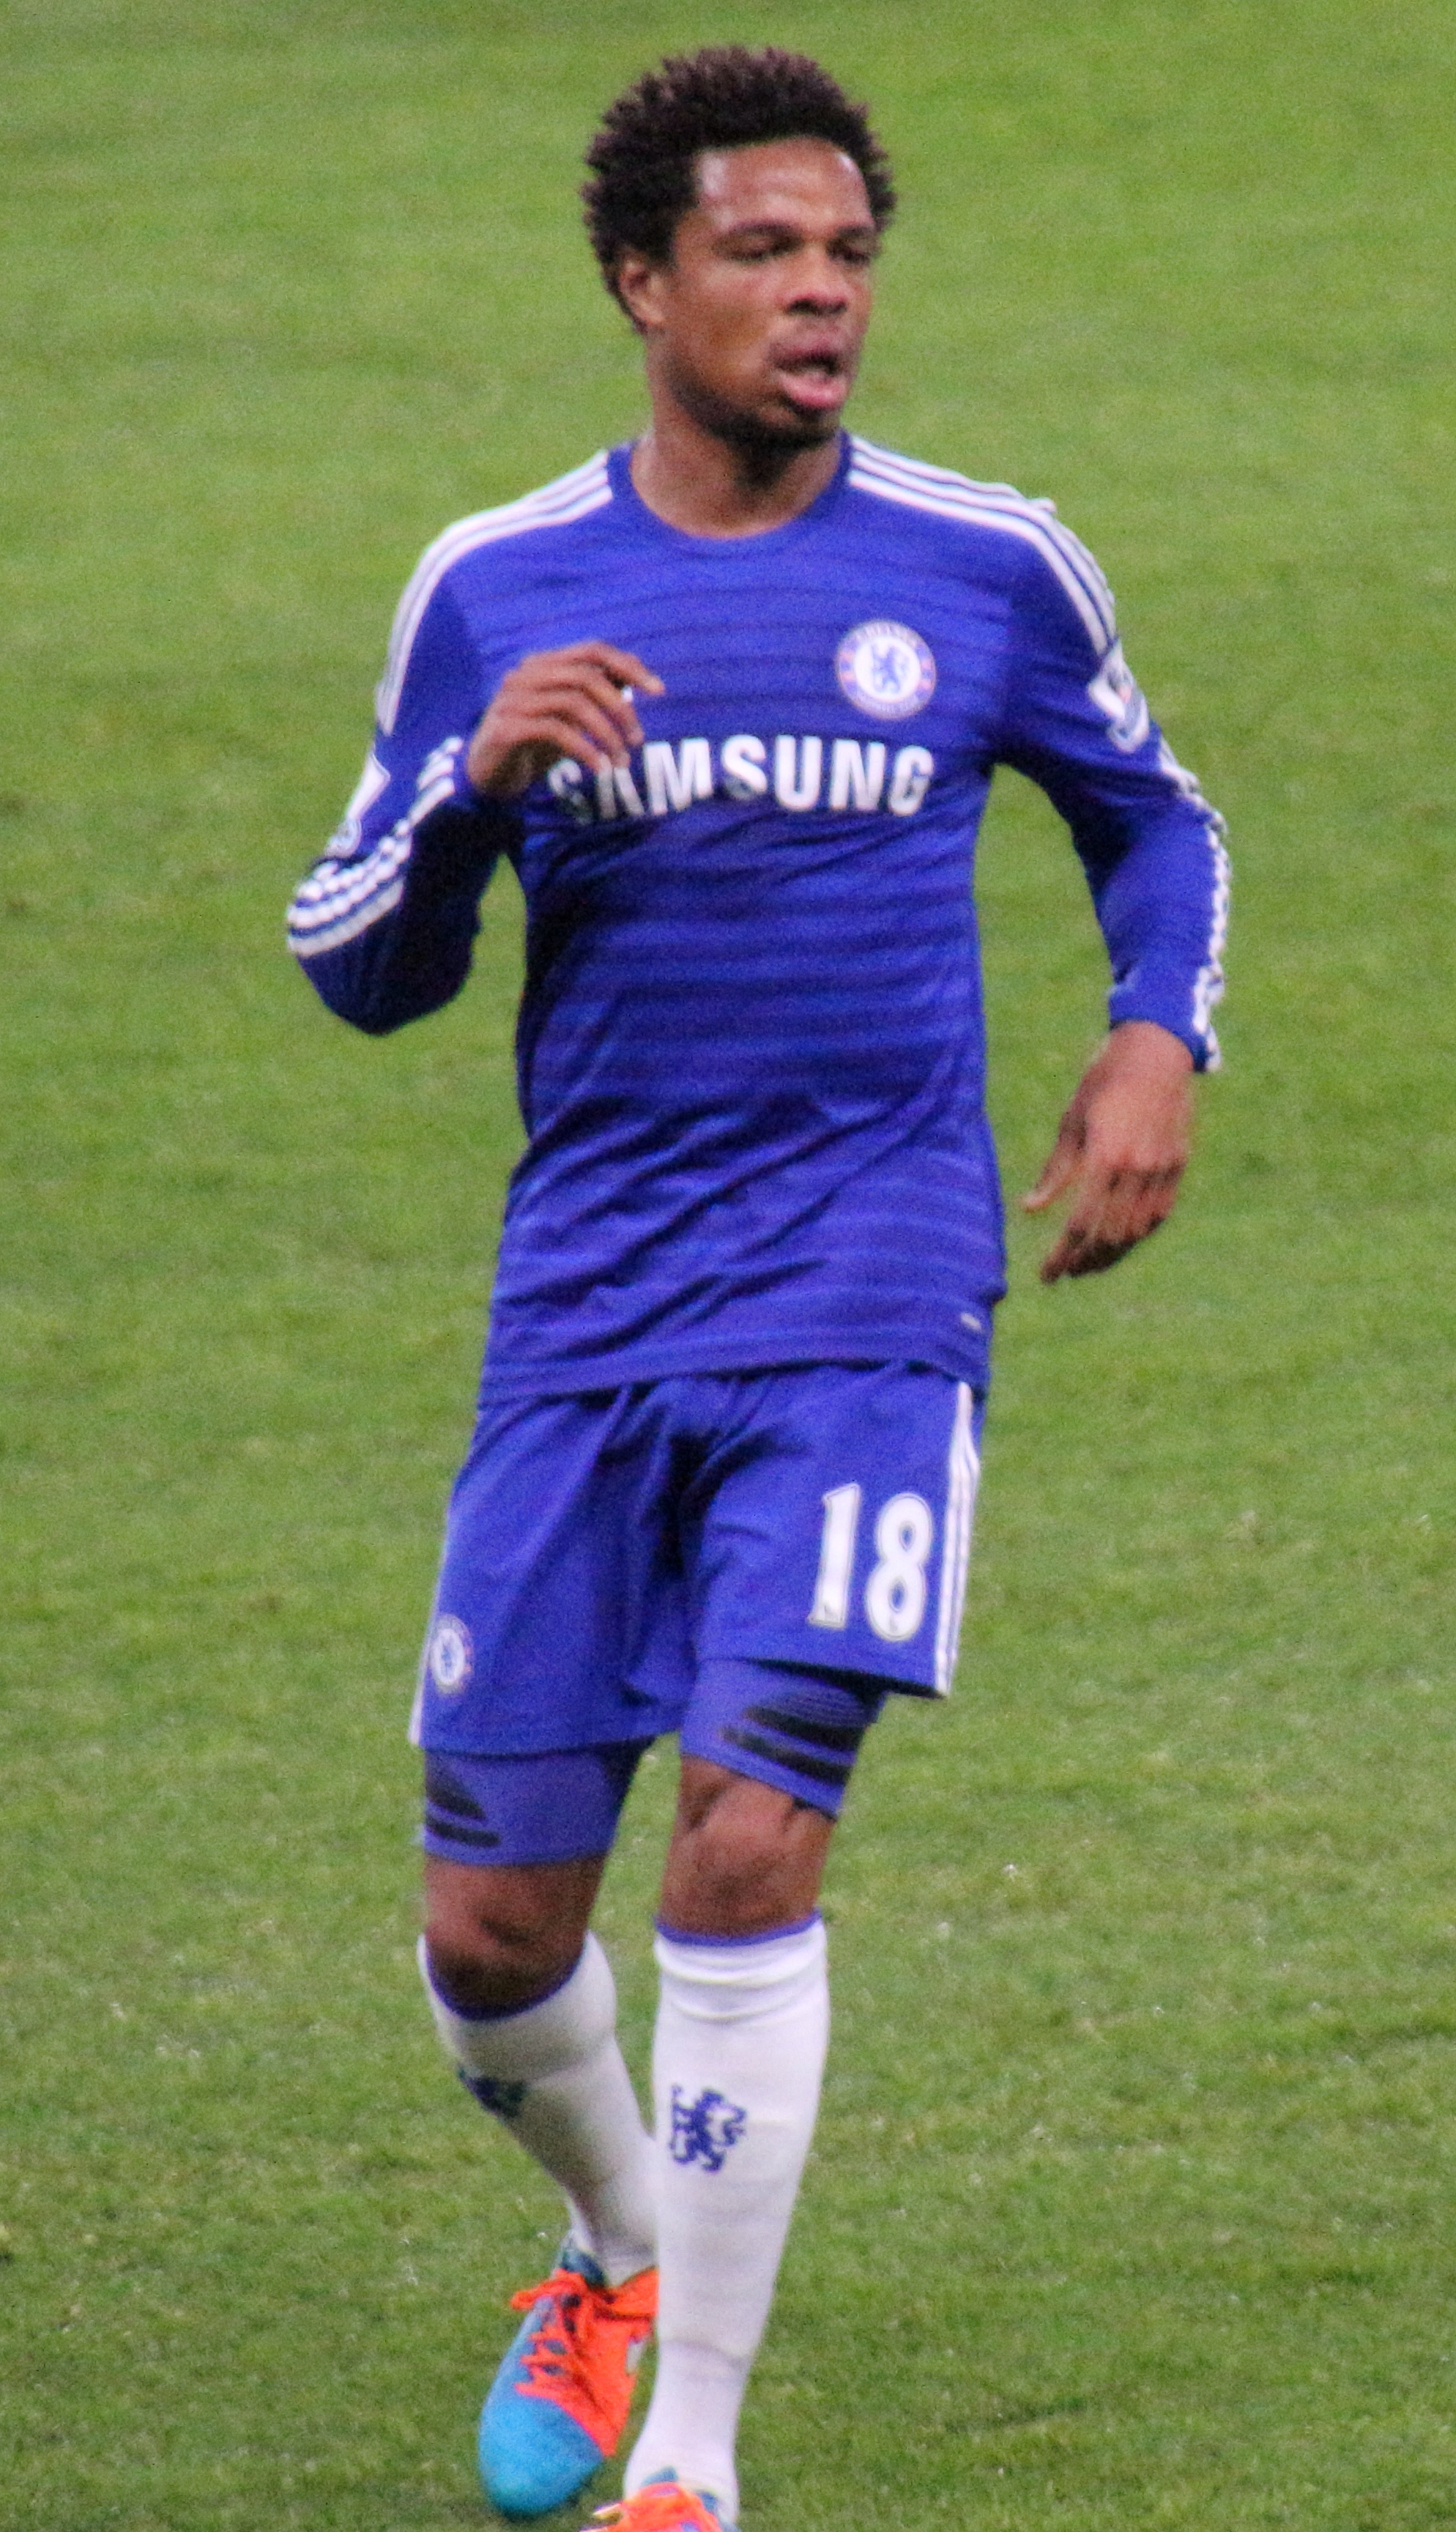 Remy Chelsea Wallpaper Rémy Playing For Chelsea in